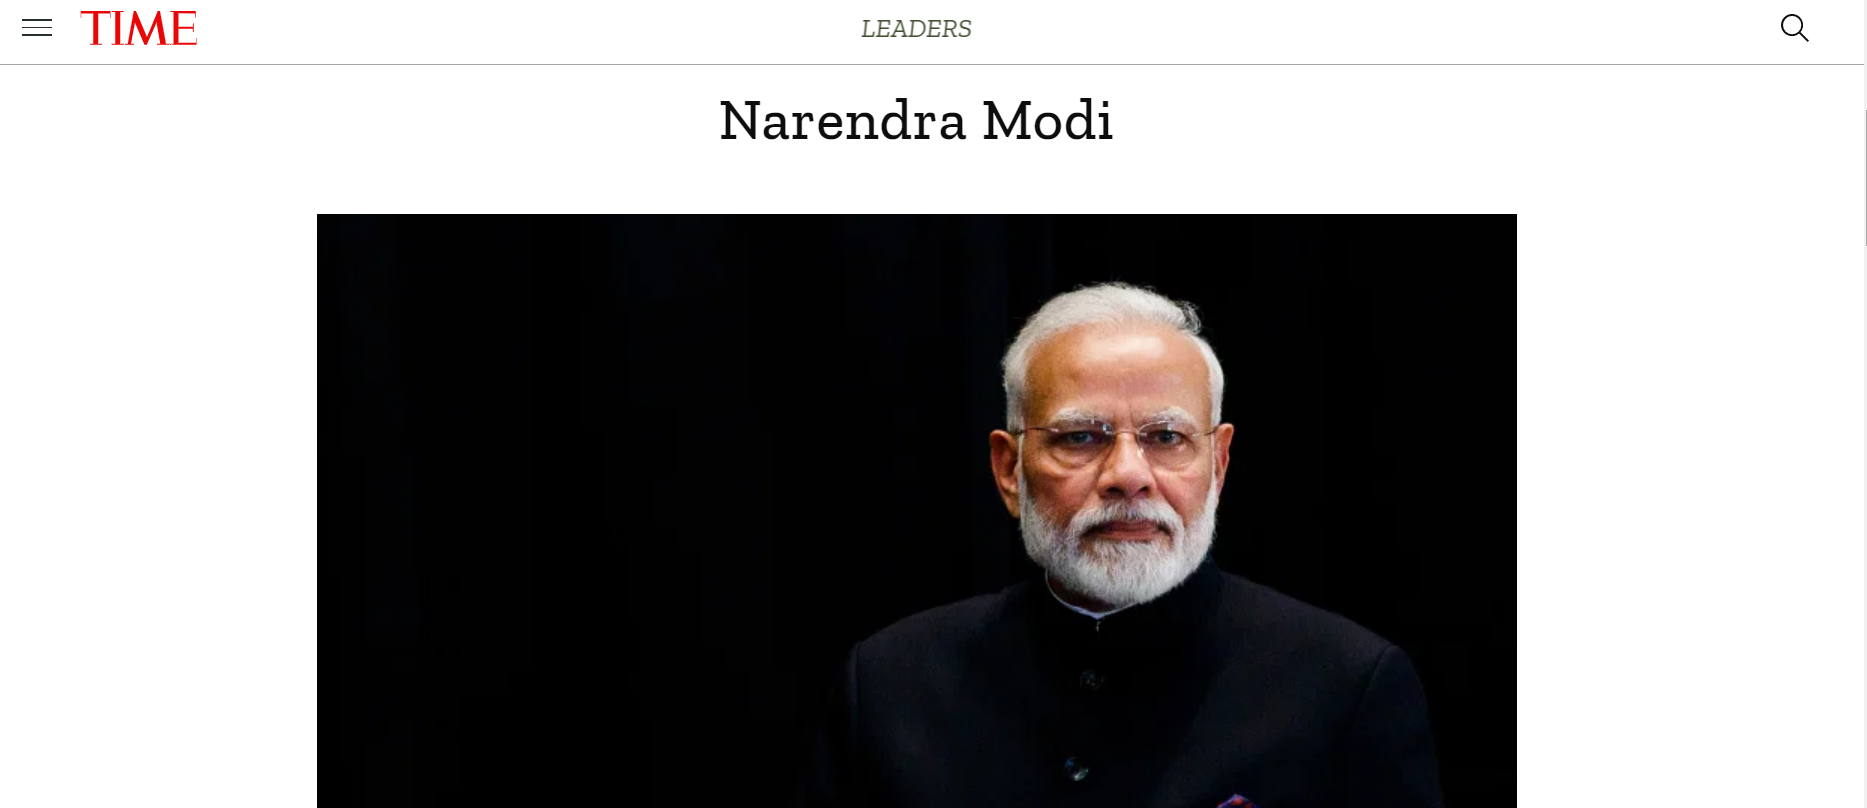 Prime Minister Narendra Modi is on TIME's list of the 100 most influential people of 2020